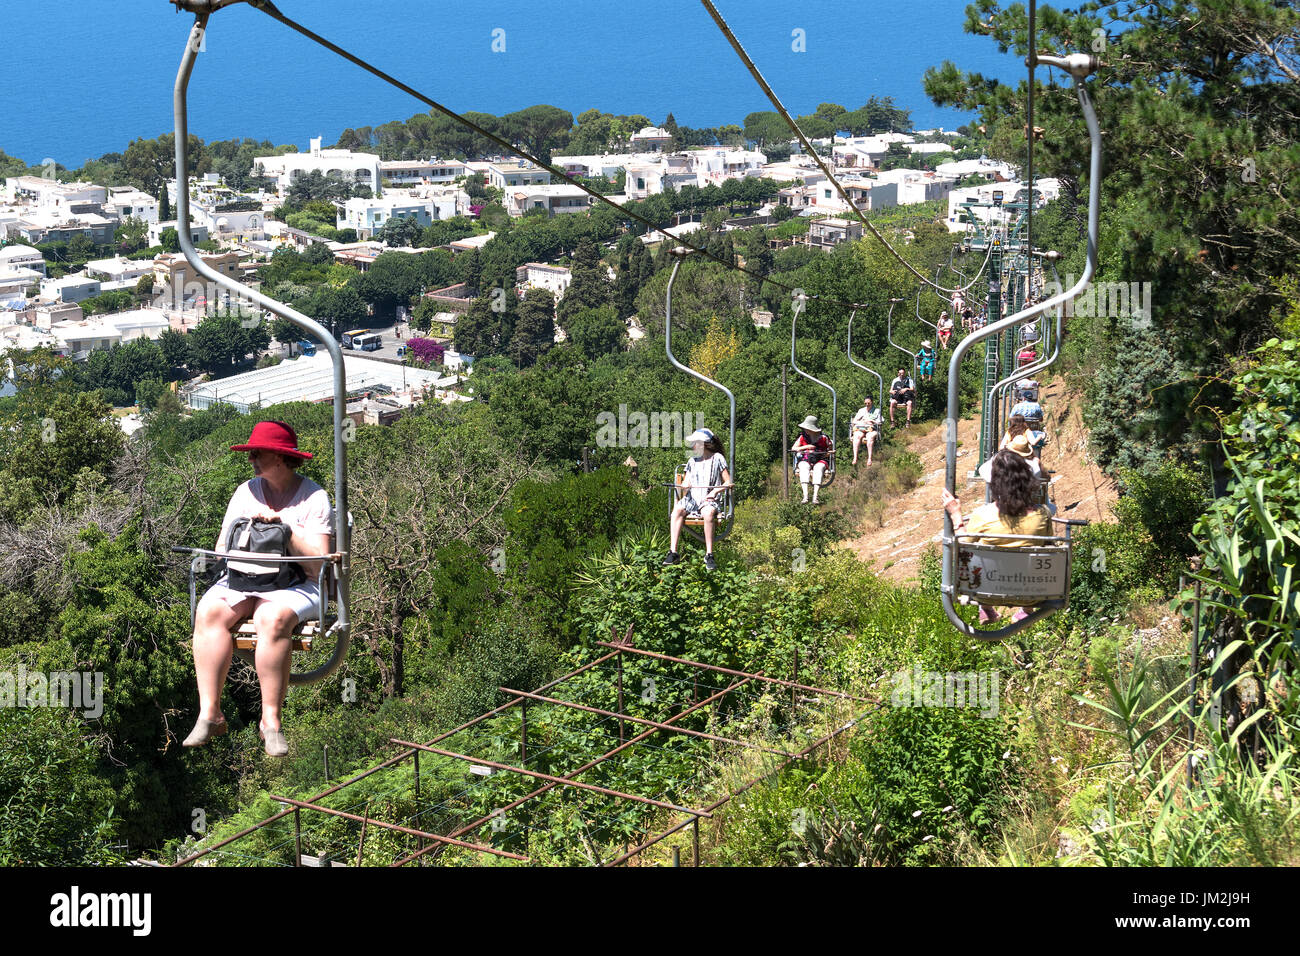 visitors taking the chairlift to the summit of monte solaro on the island of capri, italy - Stock Image